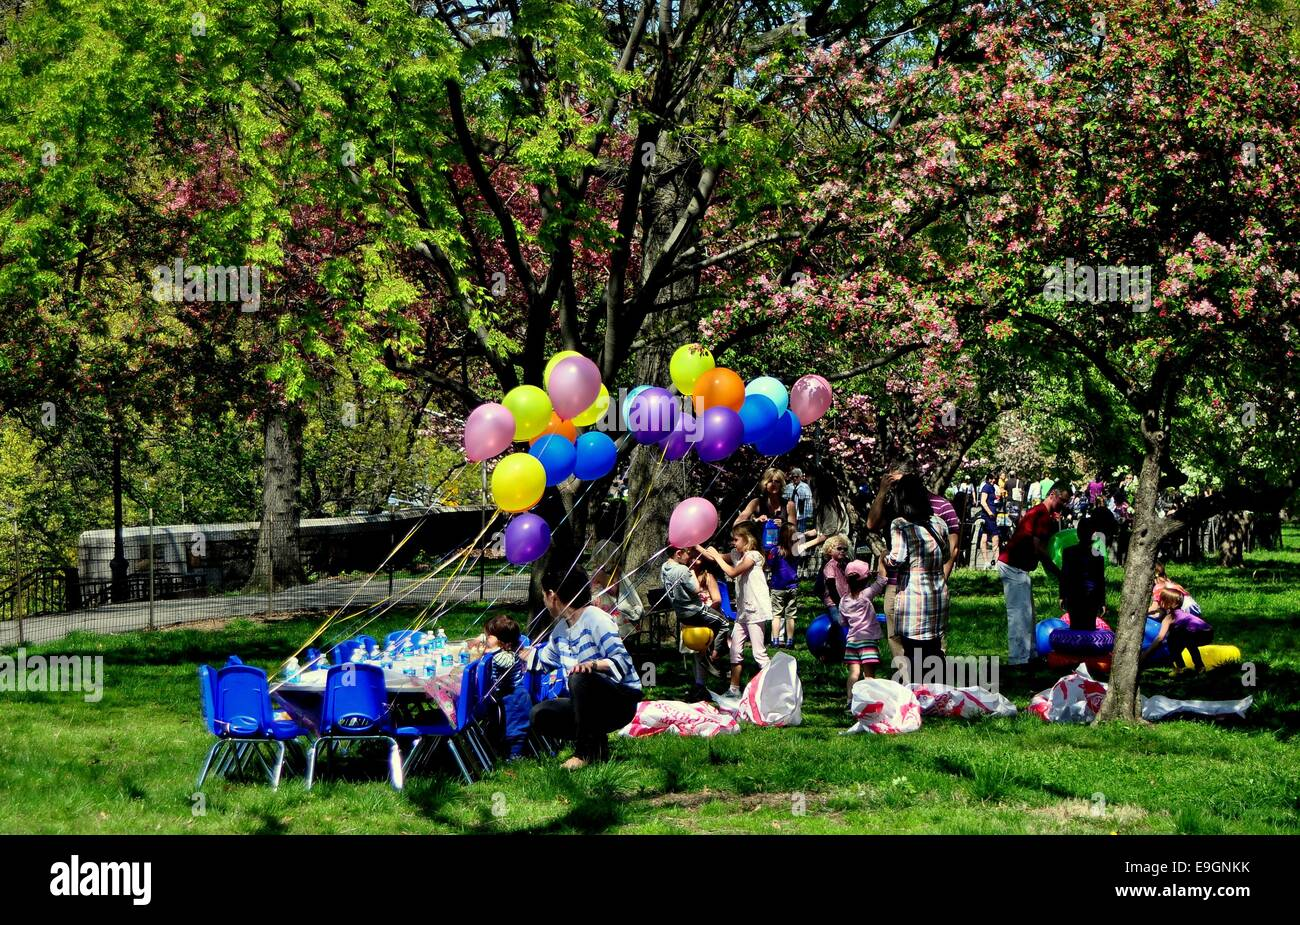 NYC Balloons Decorate A Table Set For Childs Birthday Party Beneath Grove Of Flowering Trees In Riverside Park